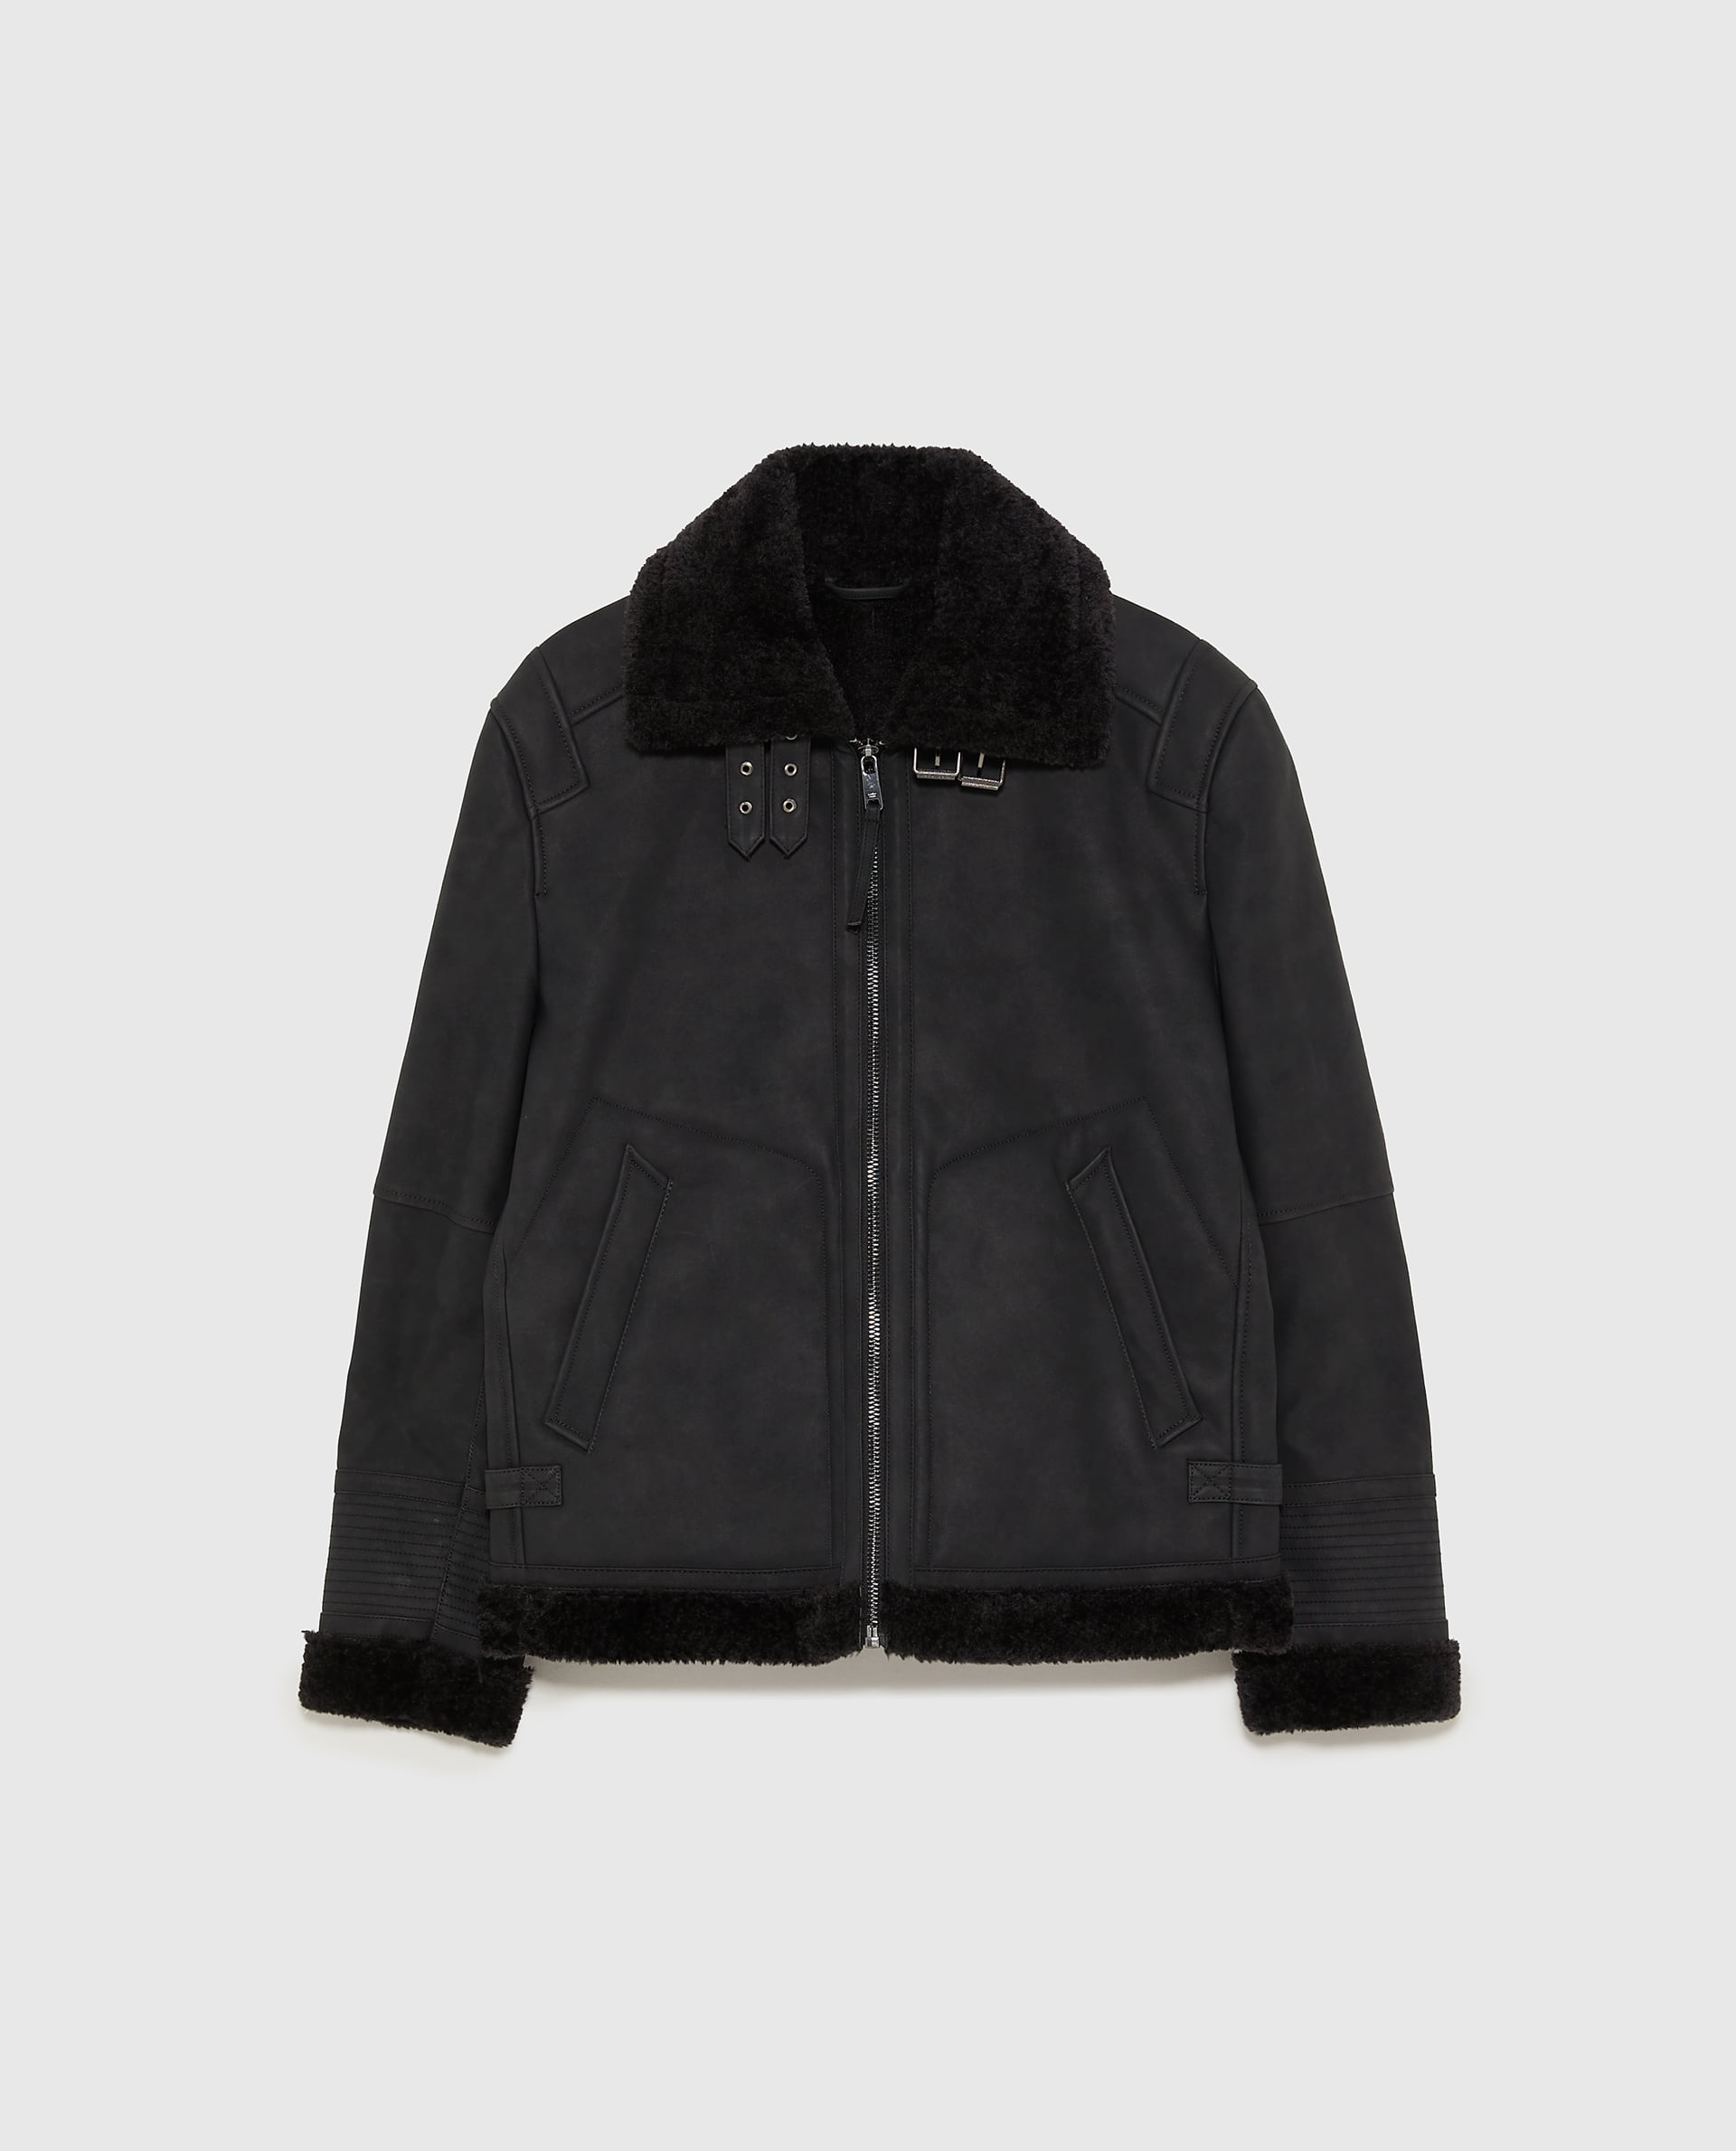 zara DOUBLE FACED JACKET